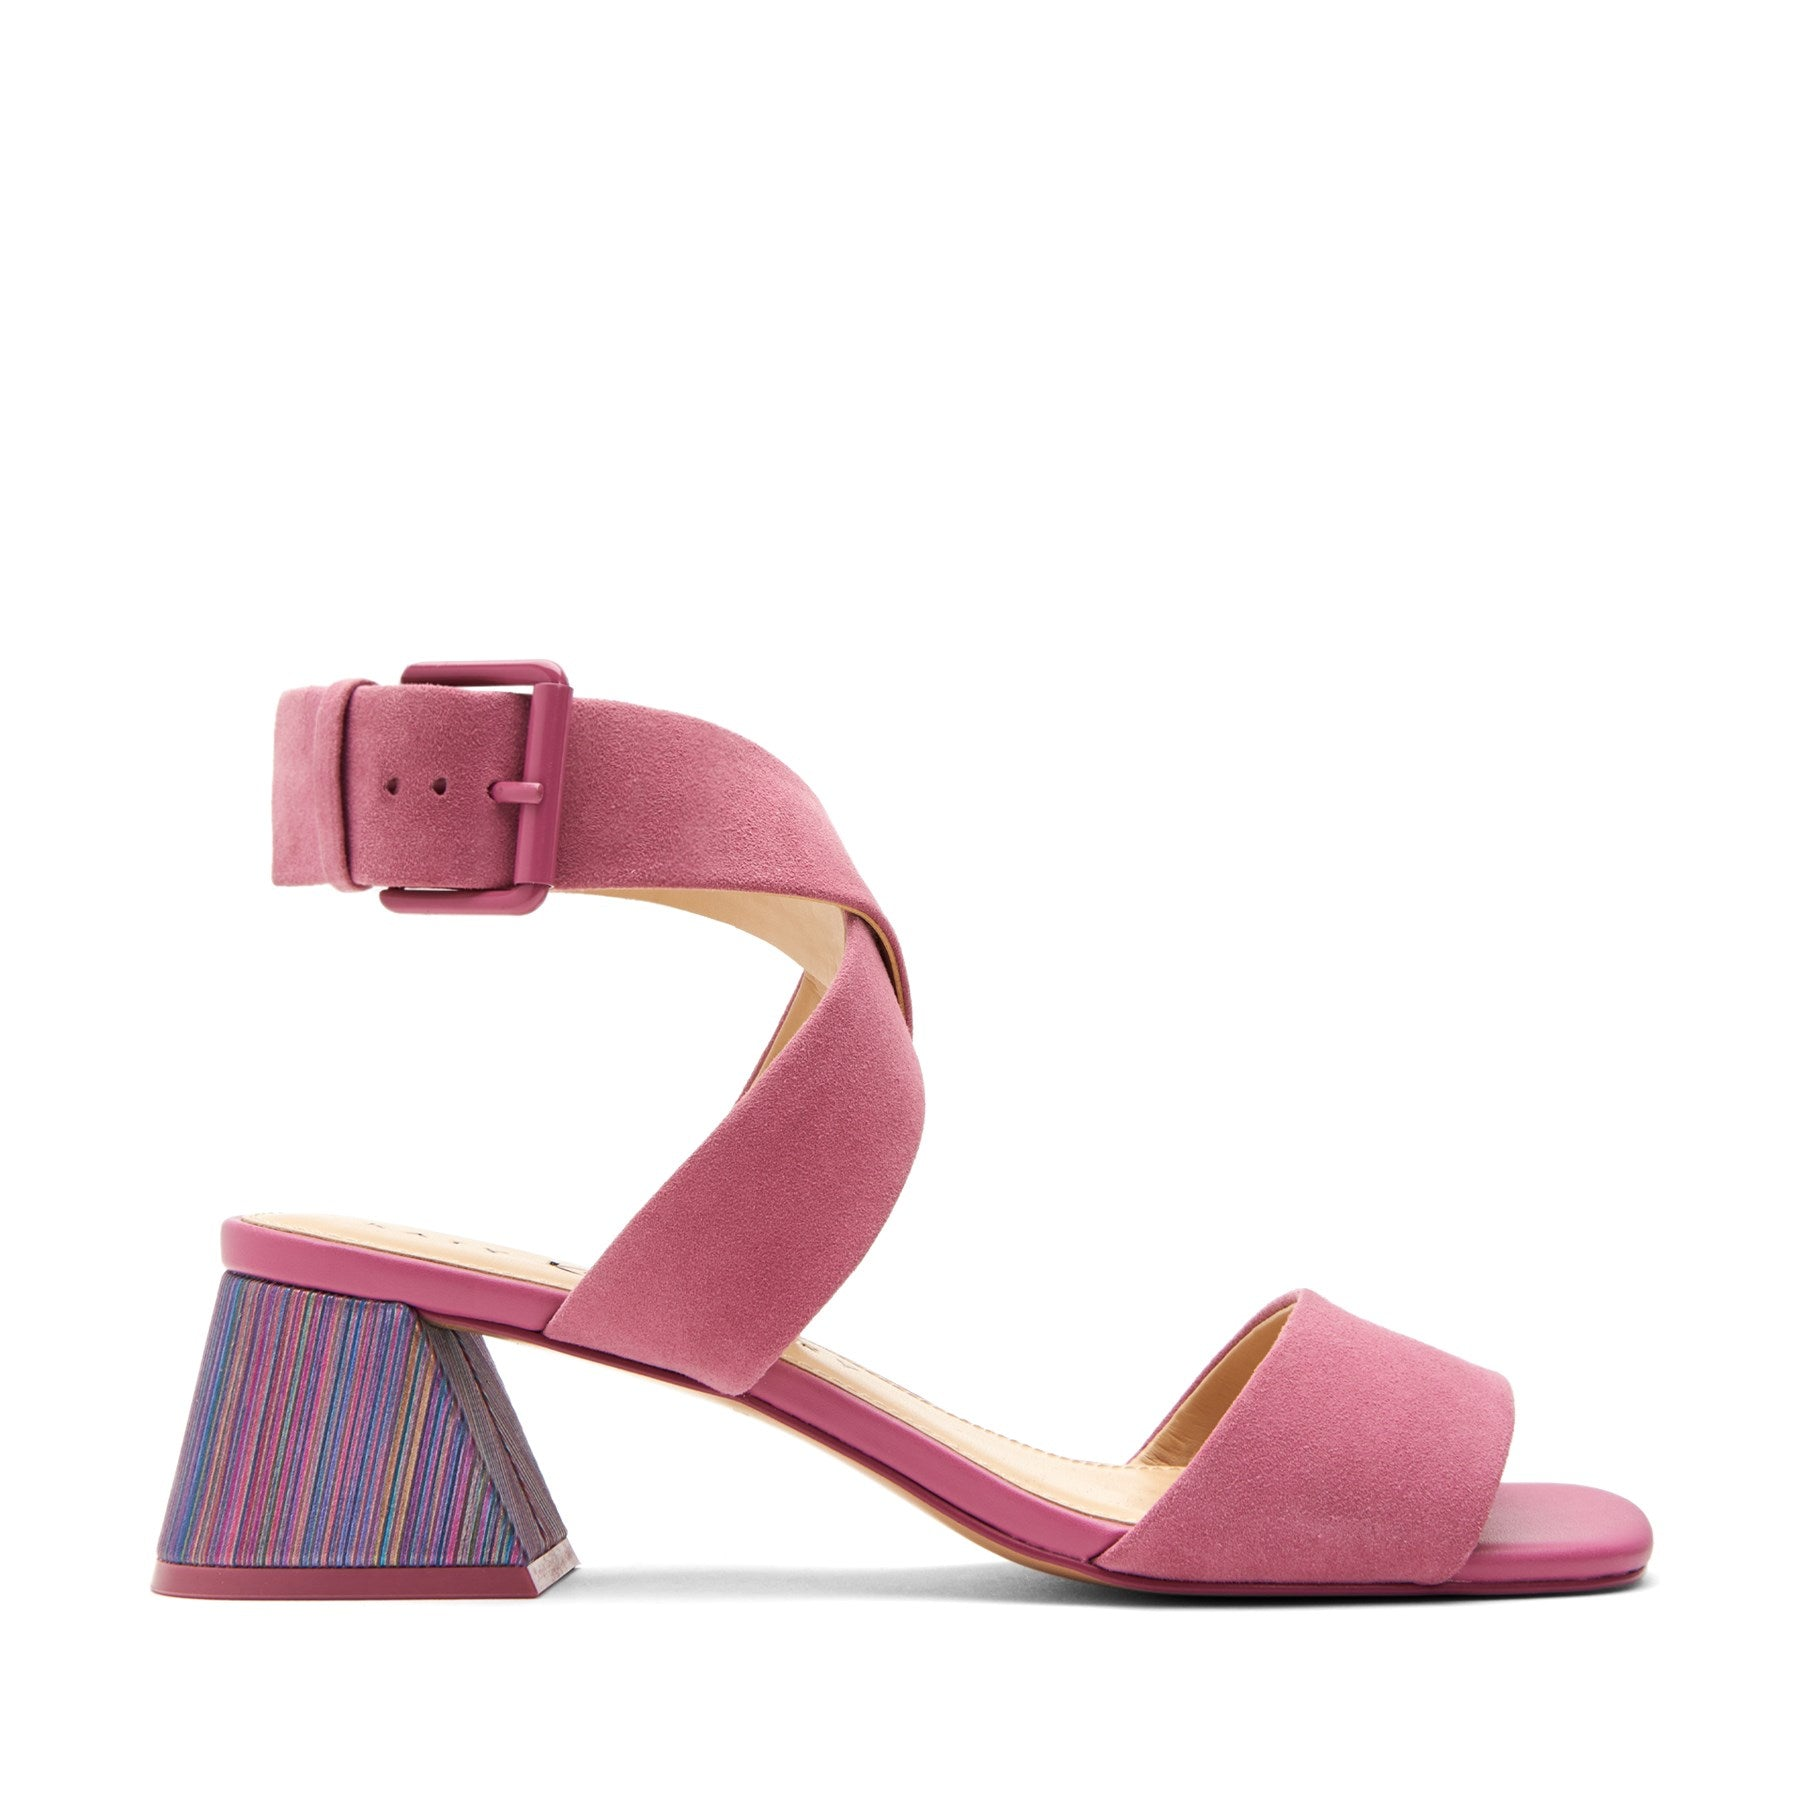 katy perry heeled sandal in dark violet size 5.5   the albee